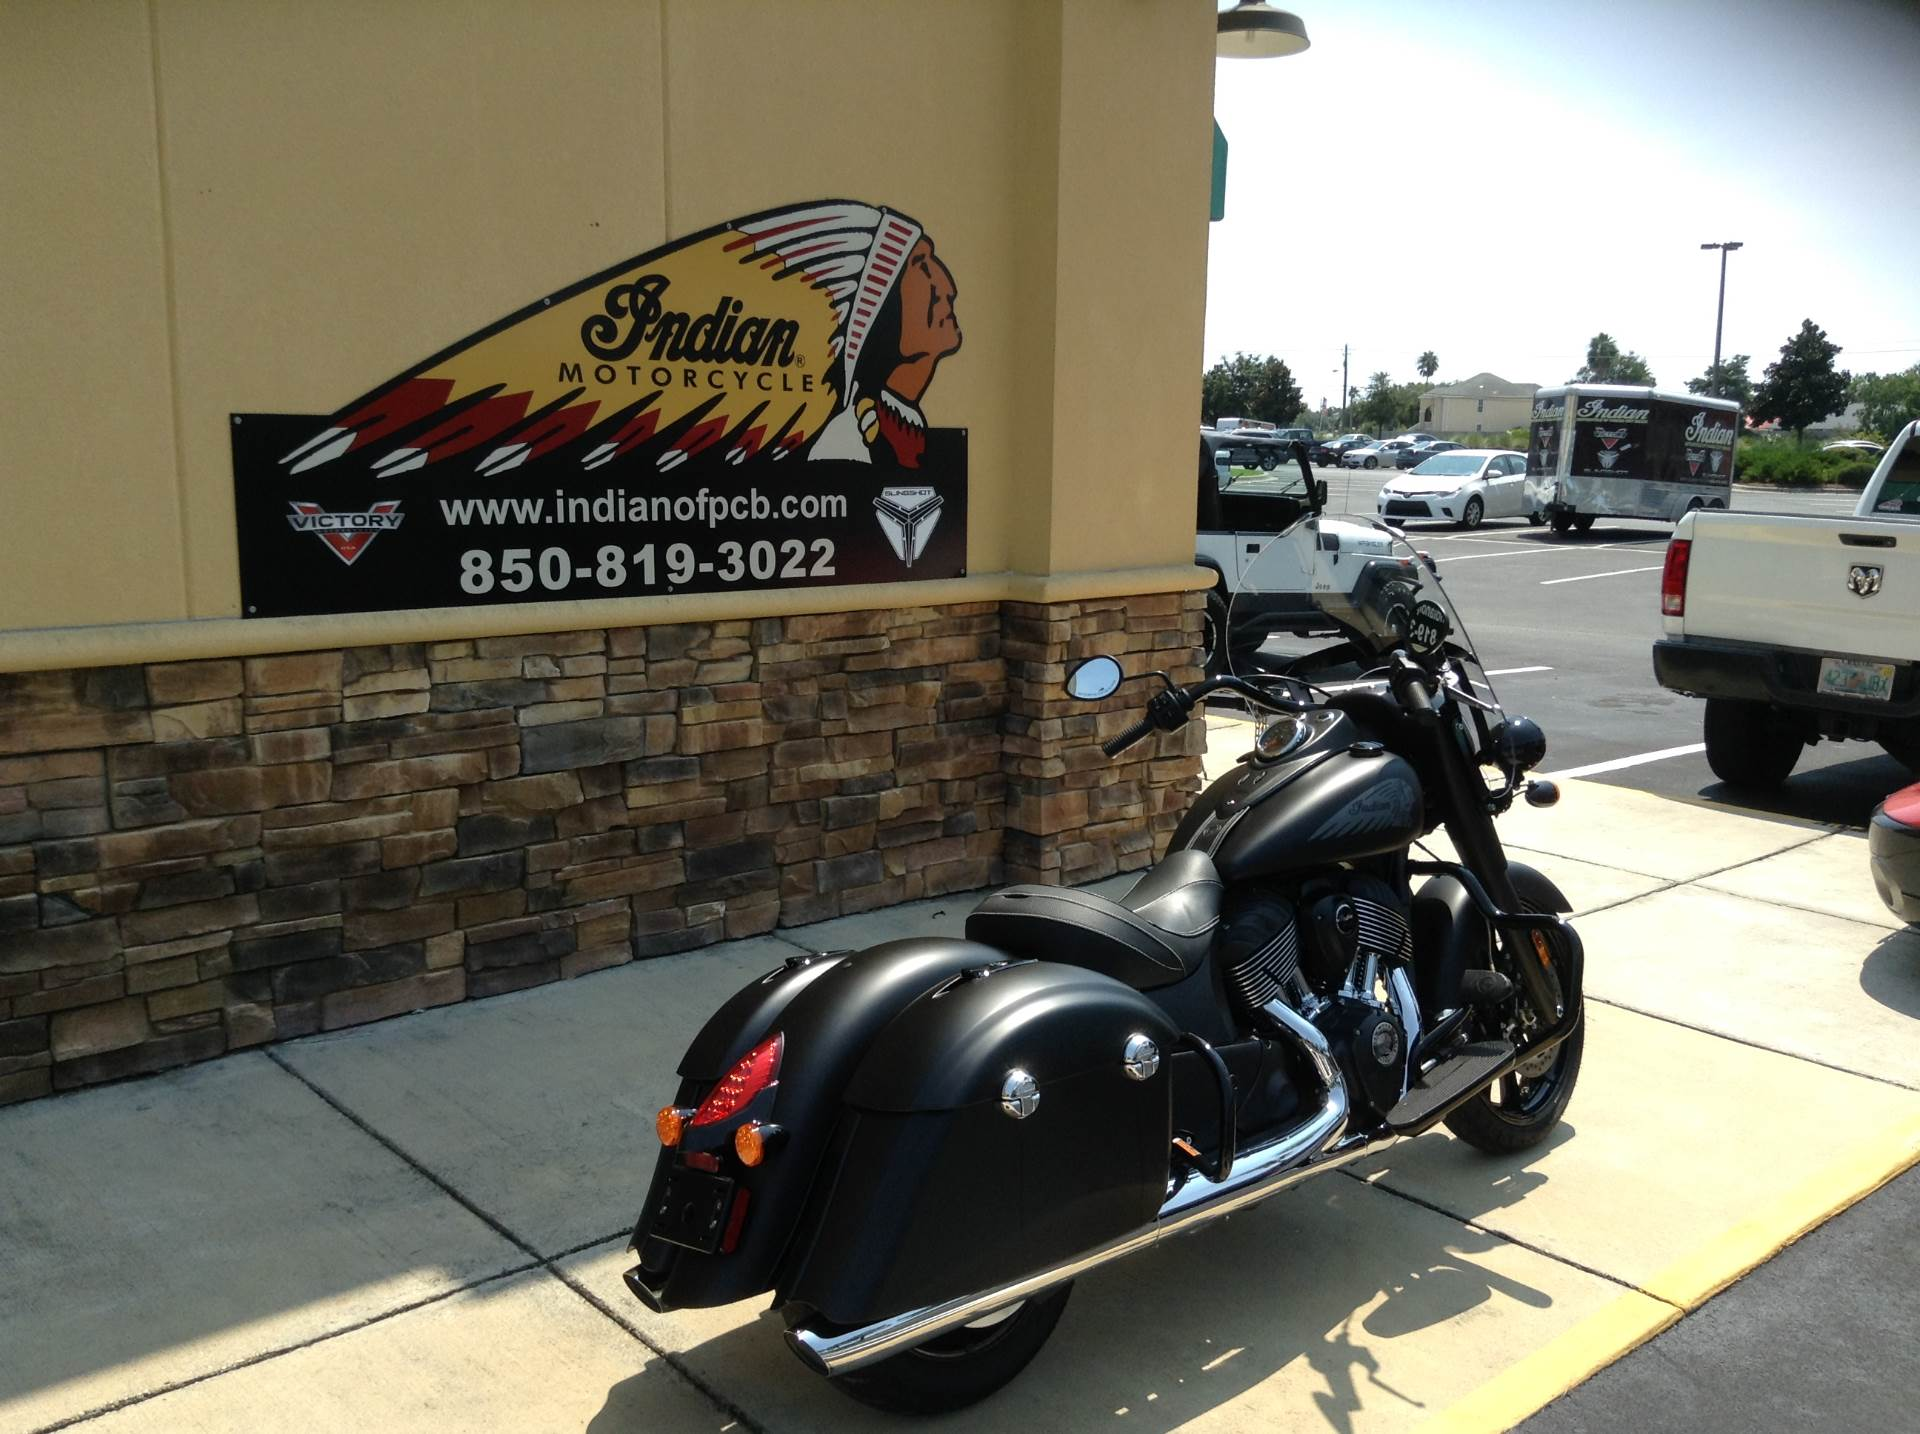 2018 Indian Springfield Dark Horse in Panama City Beach, Florida